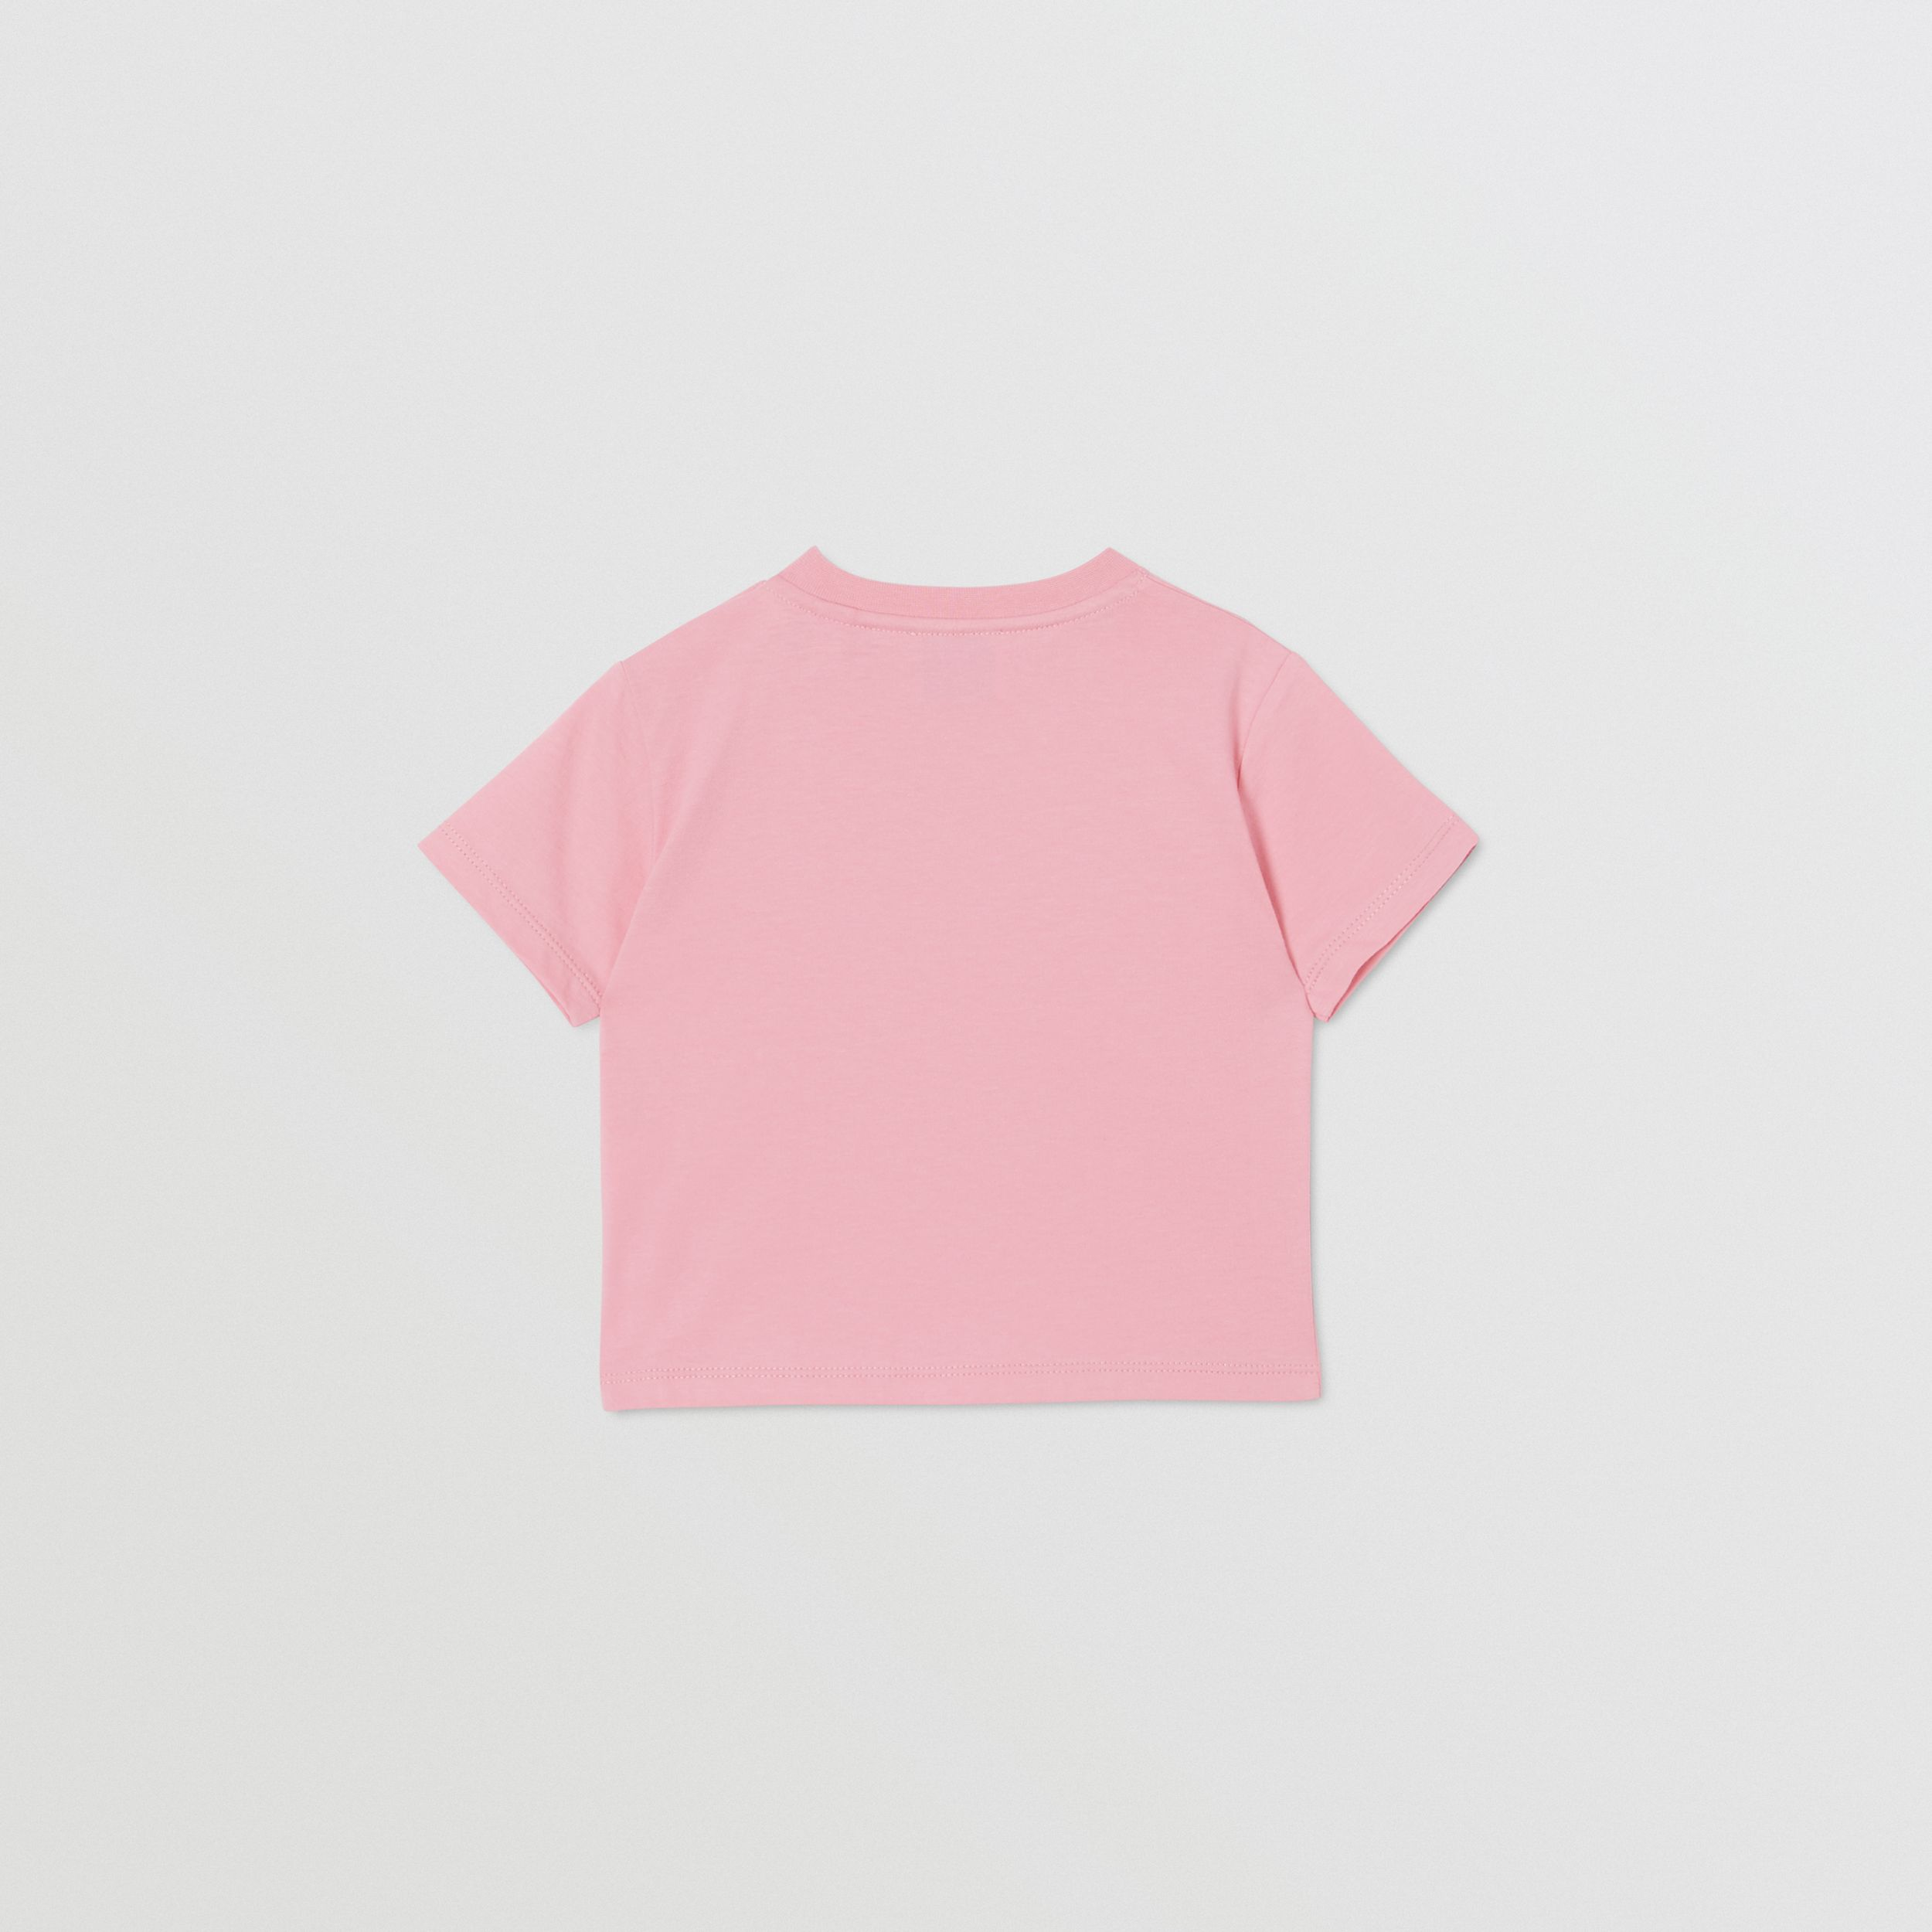 Logo Print Cotton T-shirt in Candy Pink - Children | Burberry Hong Kong S.A.R. - 4